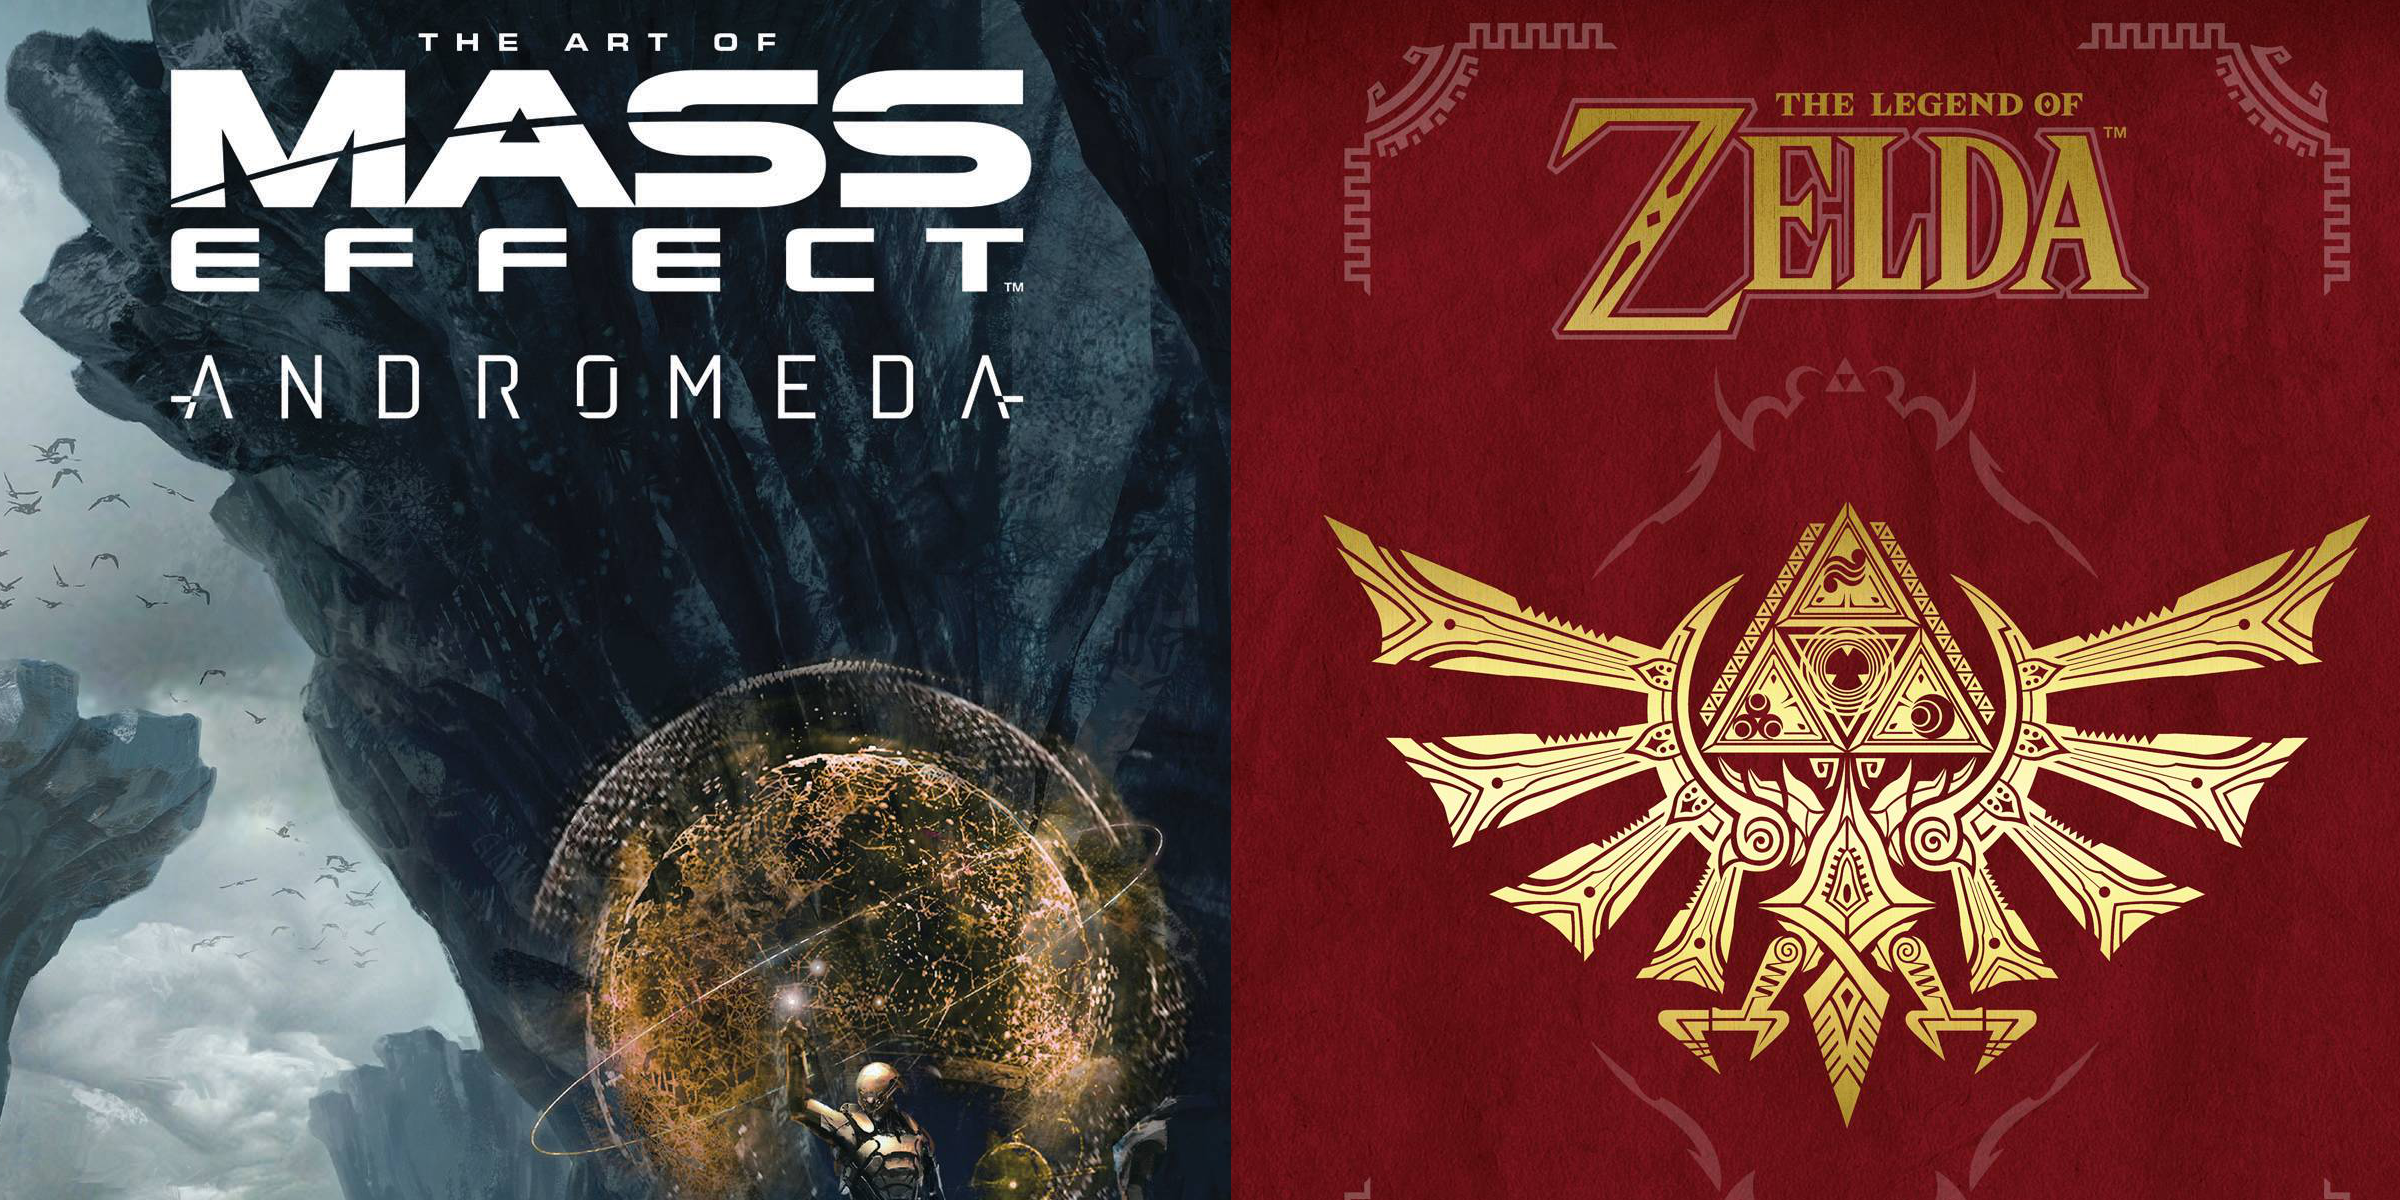 zelda-hardcover-book-mass-effect